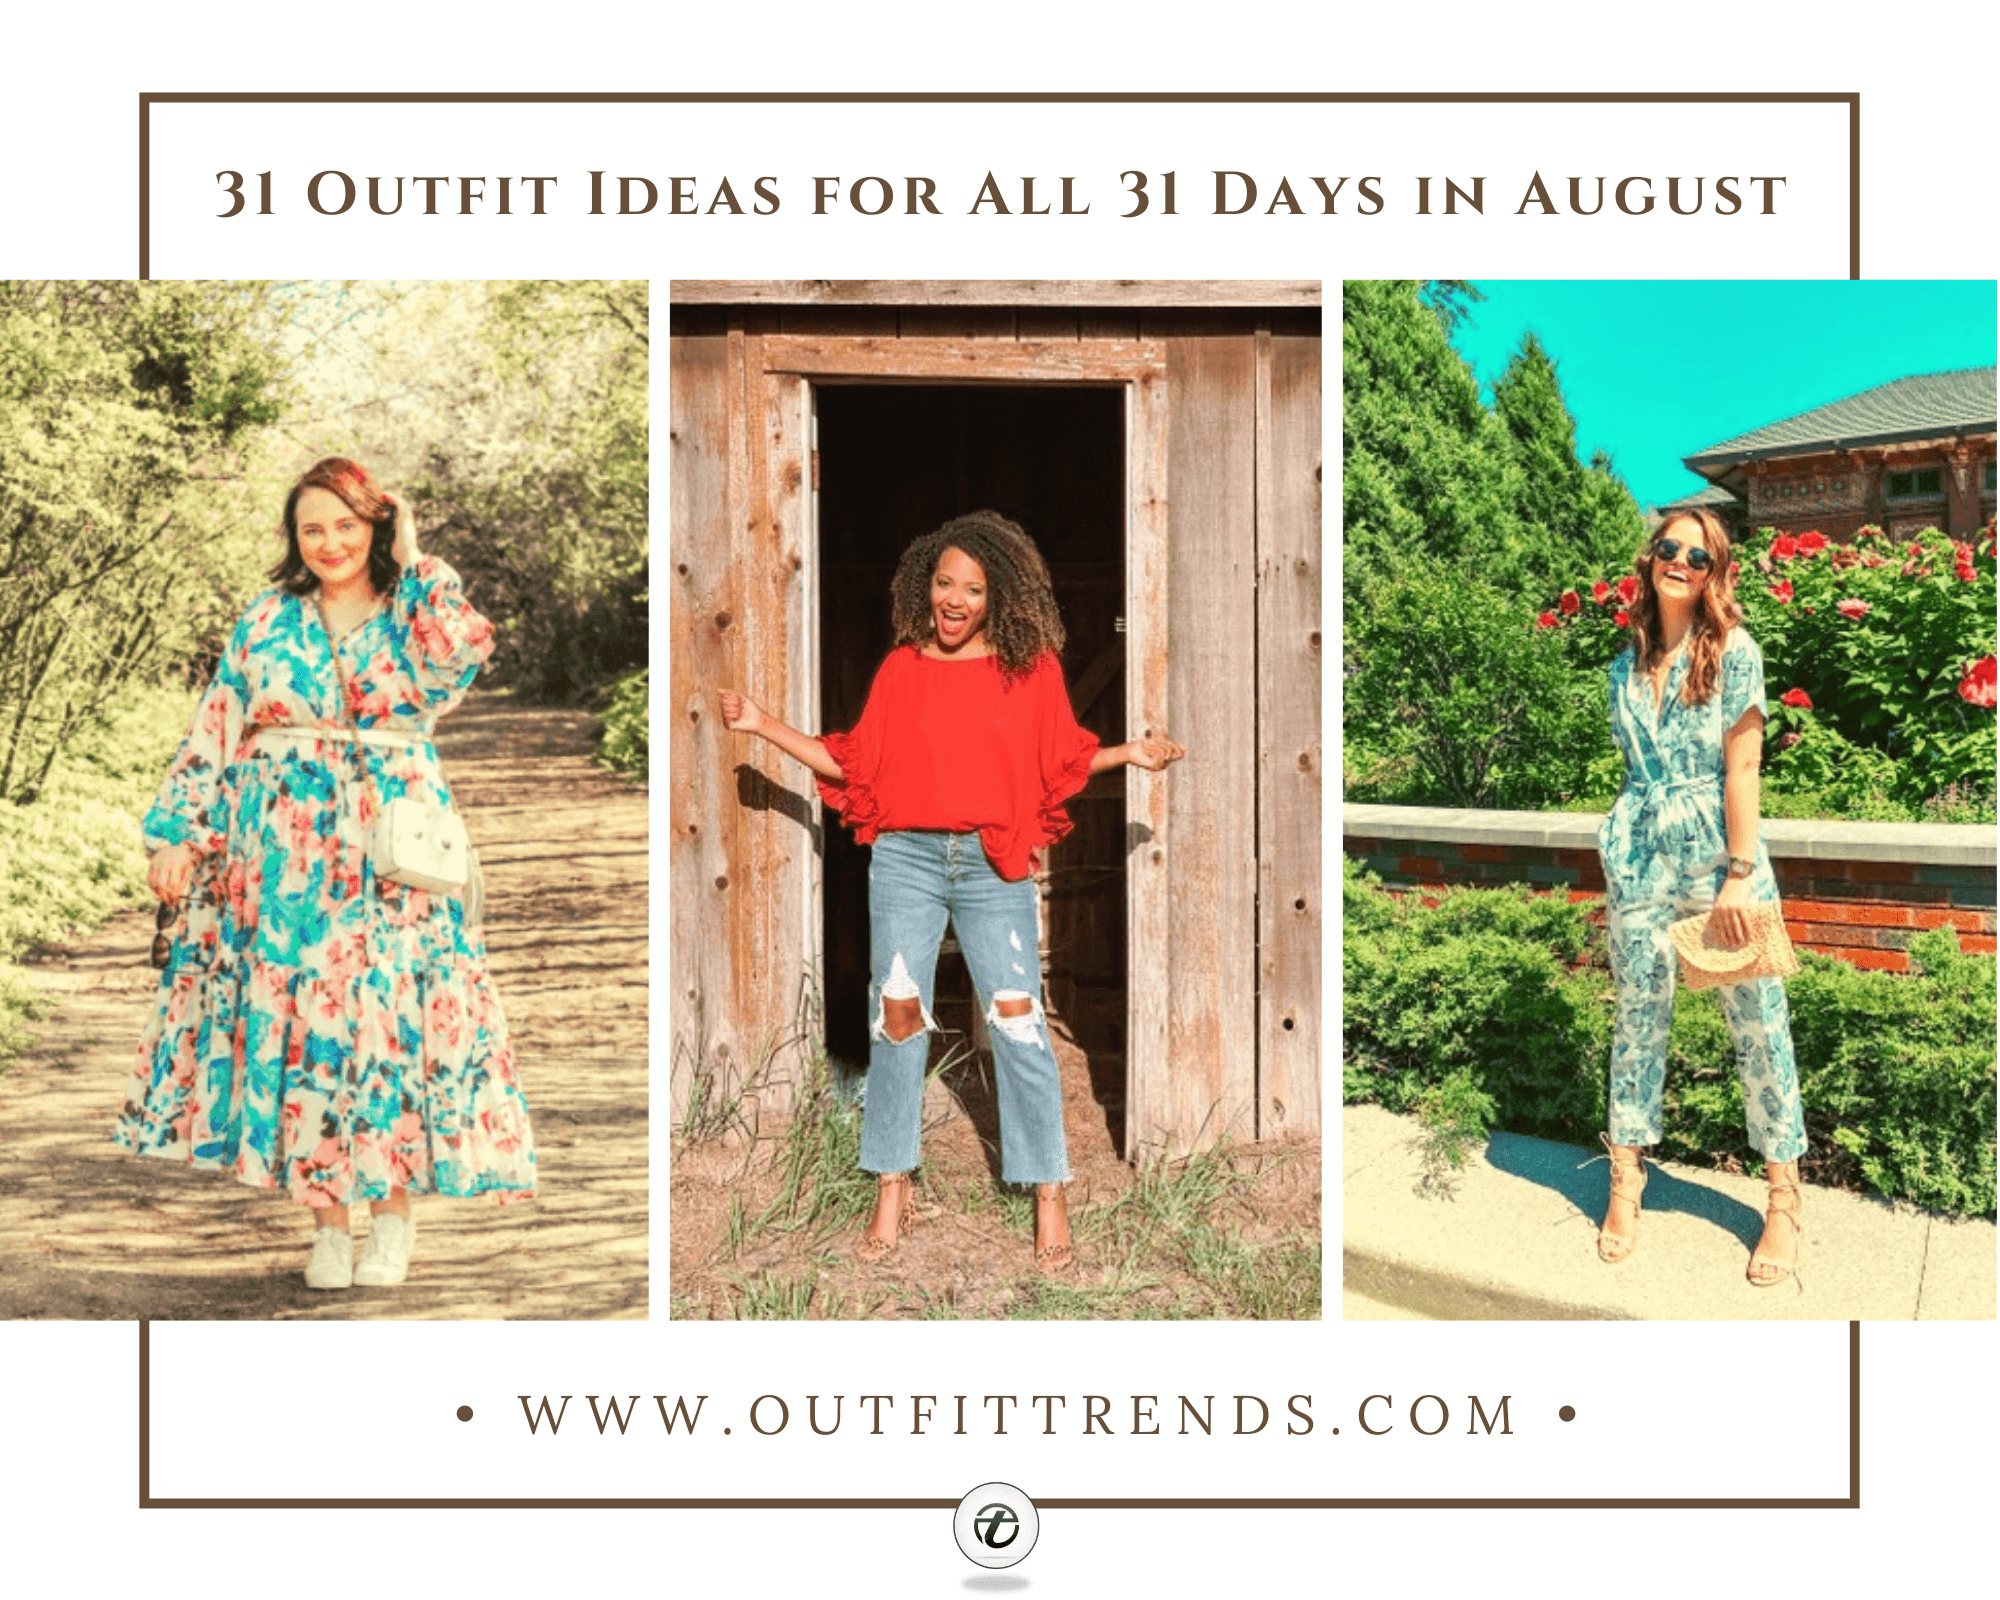 August Outfits for Women 31 Looks for Every Day of August